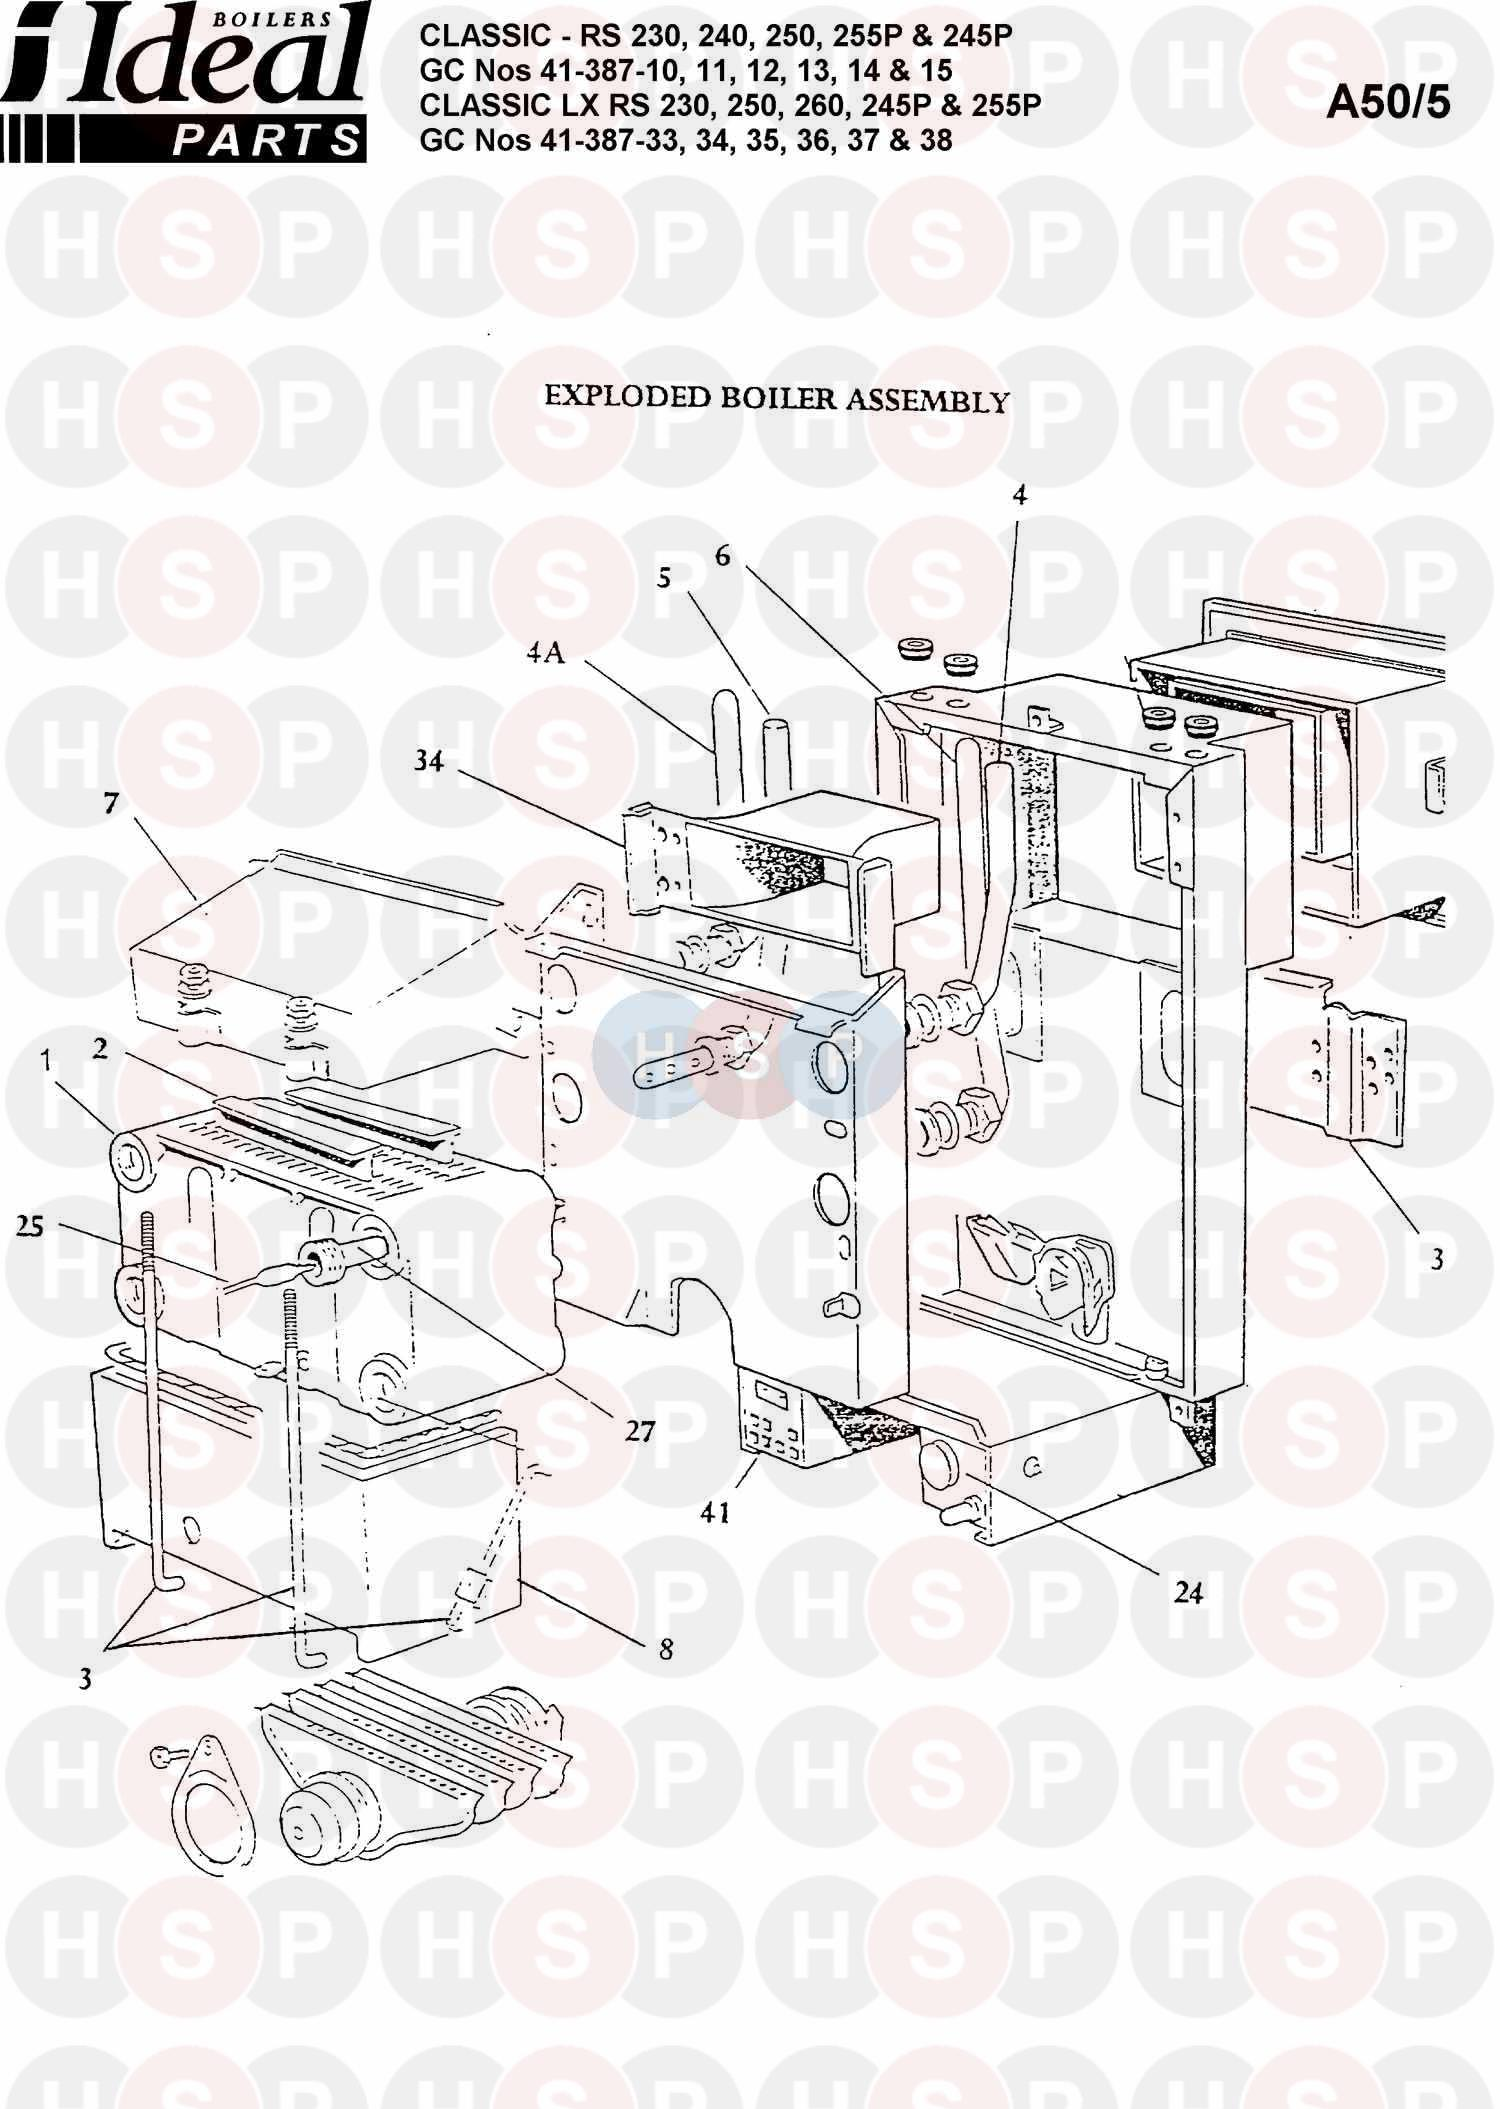 Ideal CLASSIC RS 250 Appliance Diagram (BOILER ASSEMBLY 1